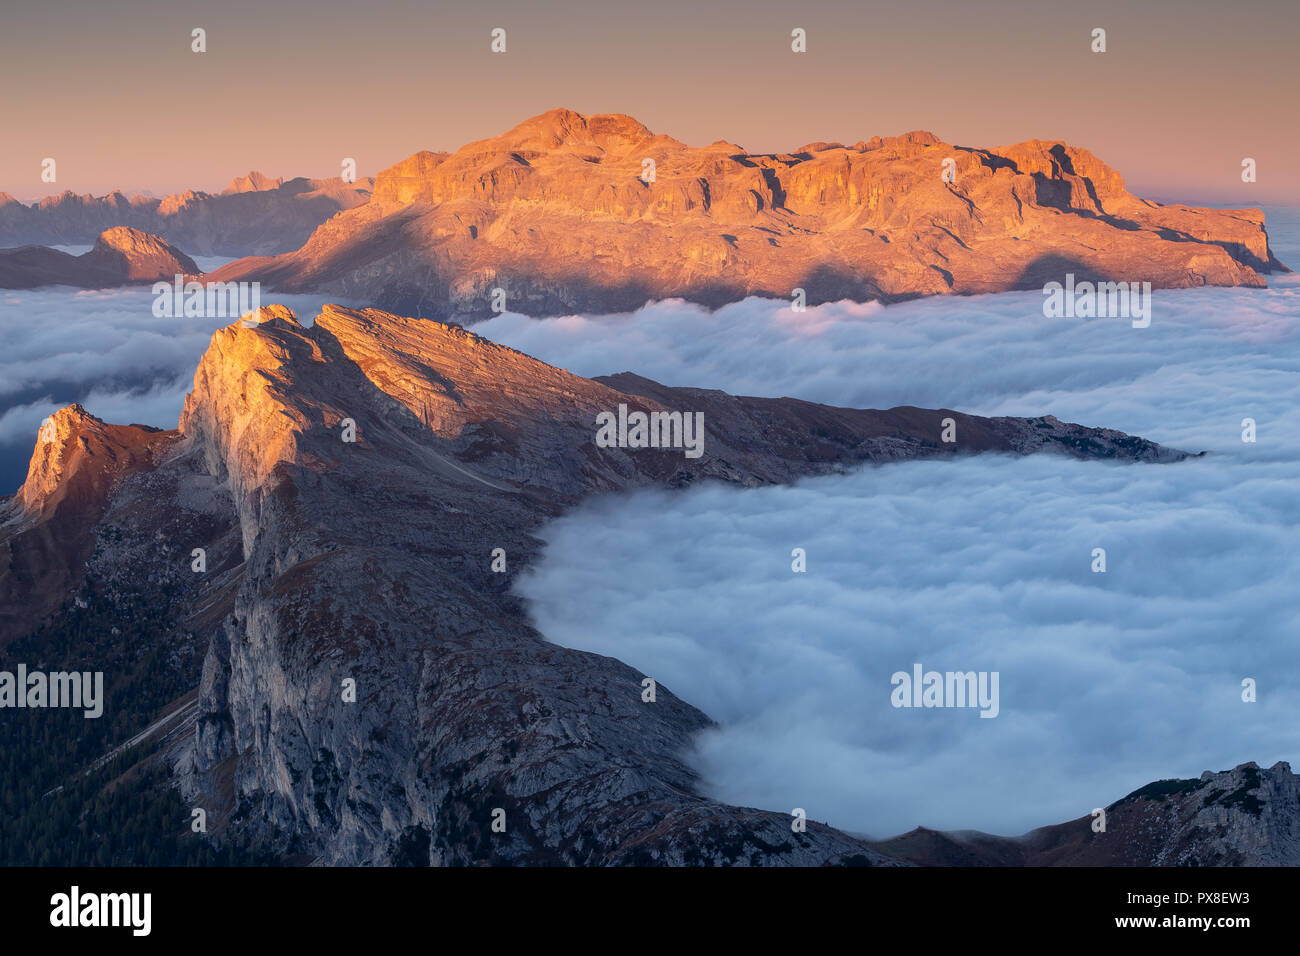 The Sella mountain group at sunrise. Tide of clouds. The Dolomites - Stock Image